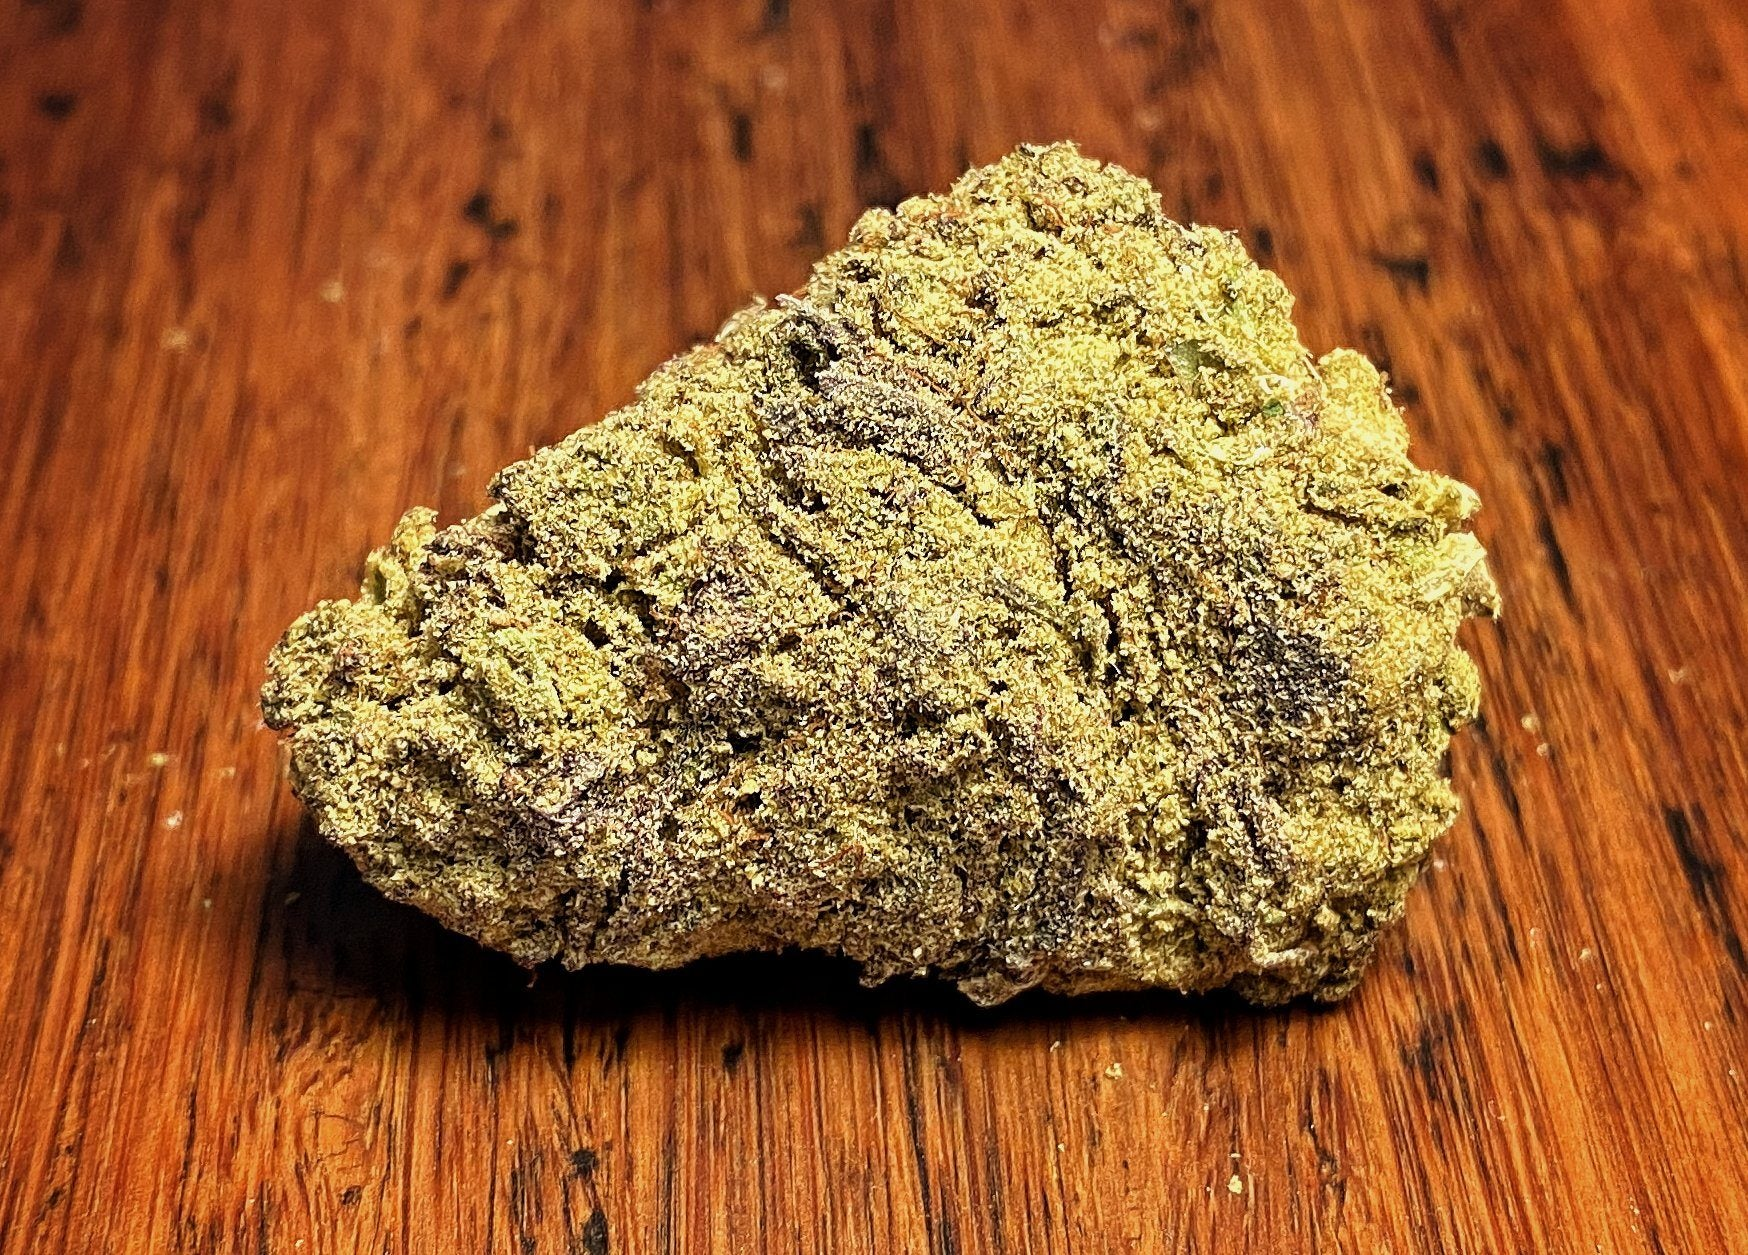 Kief Duster - CBD Hemp Flower - BackWoodz CBD